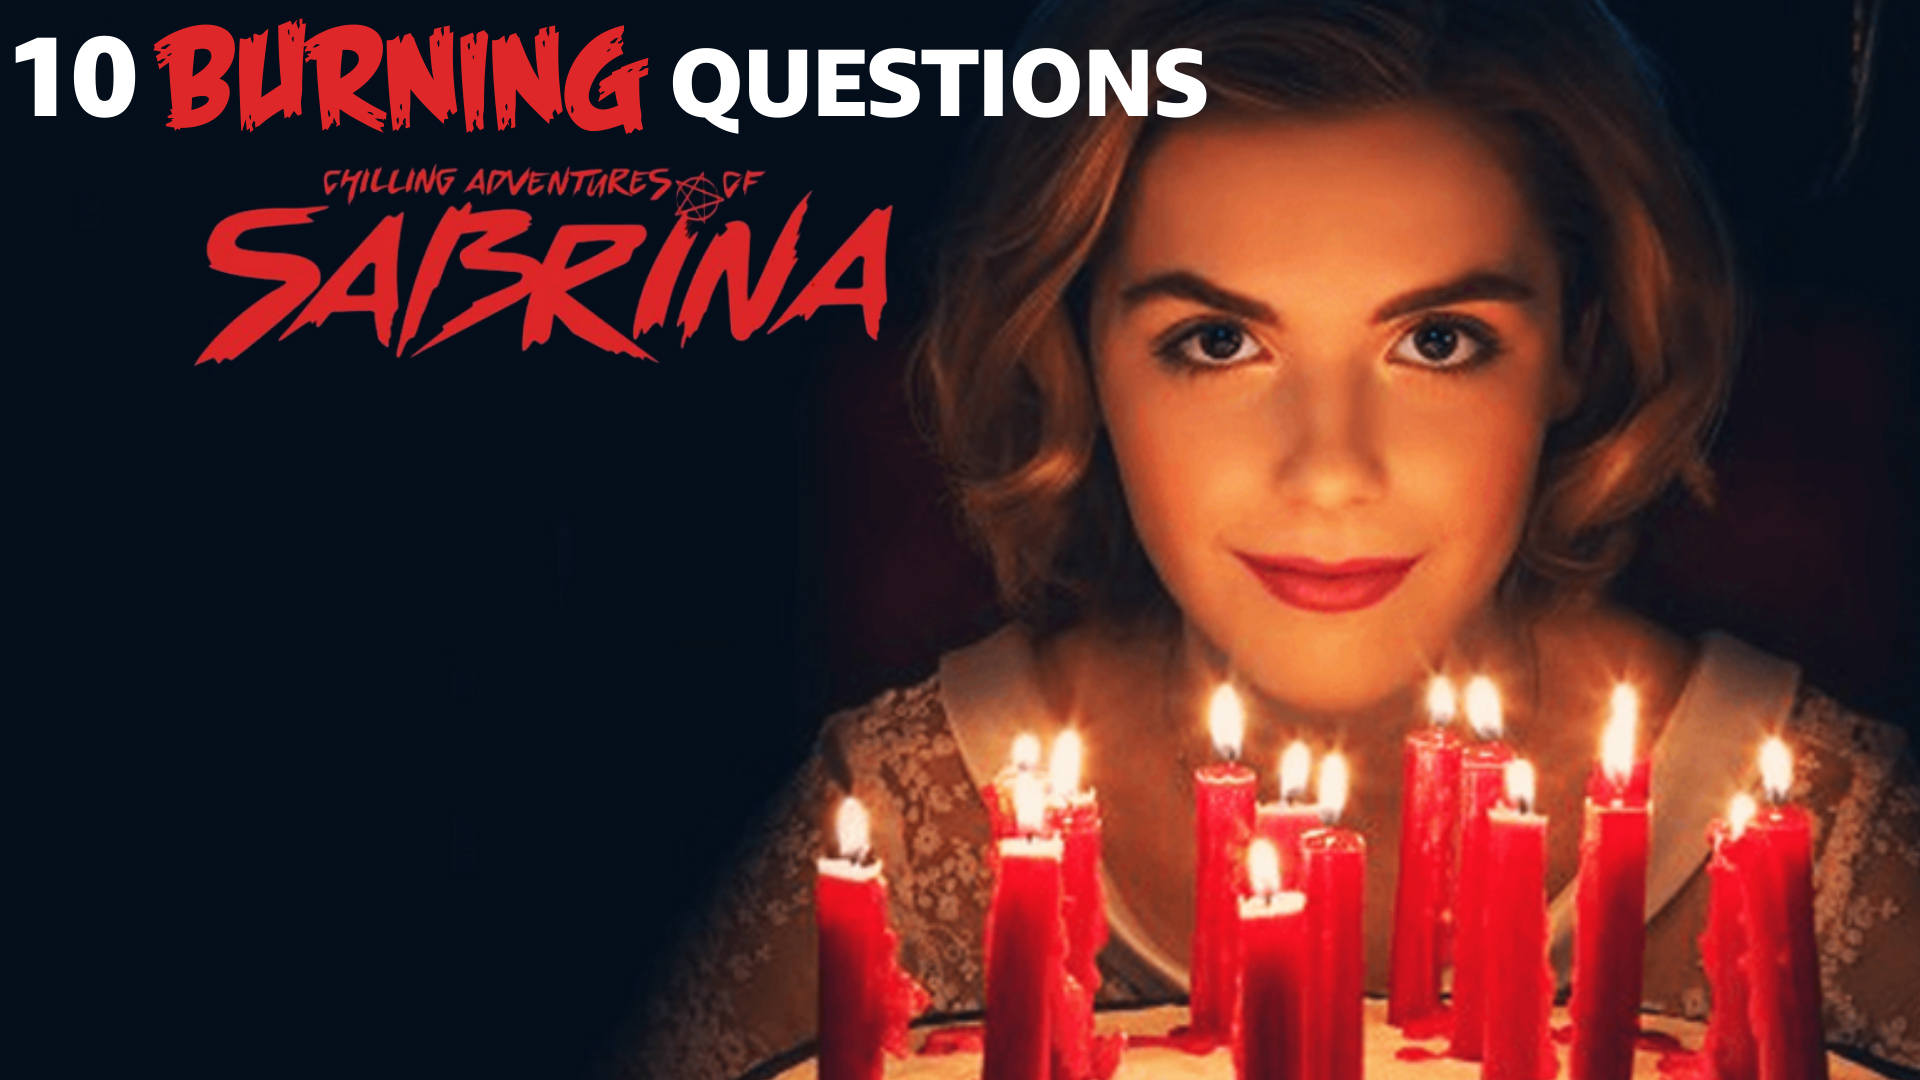 10 Burning Questions After Watching Chilling Adventures Of Sabrina